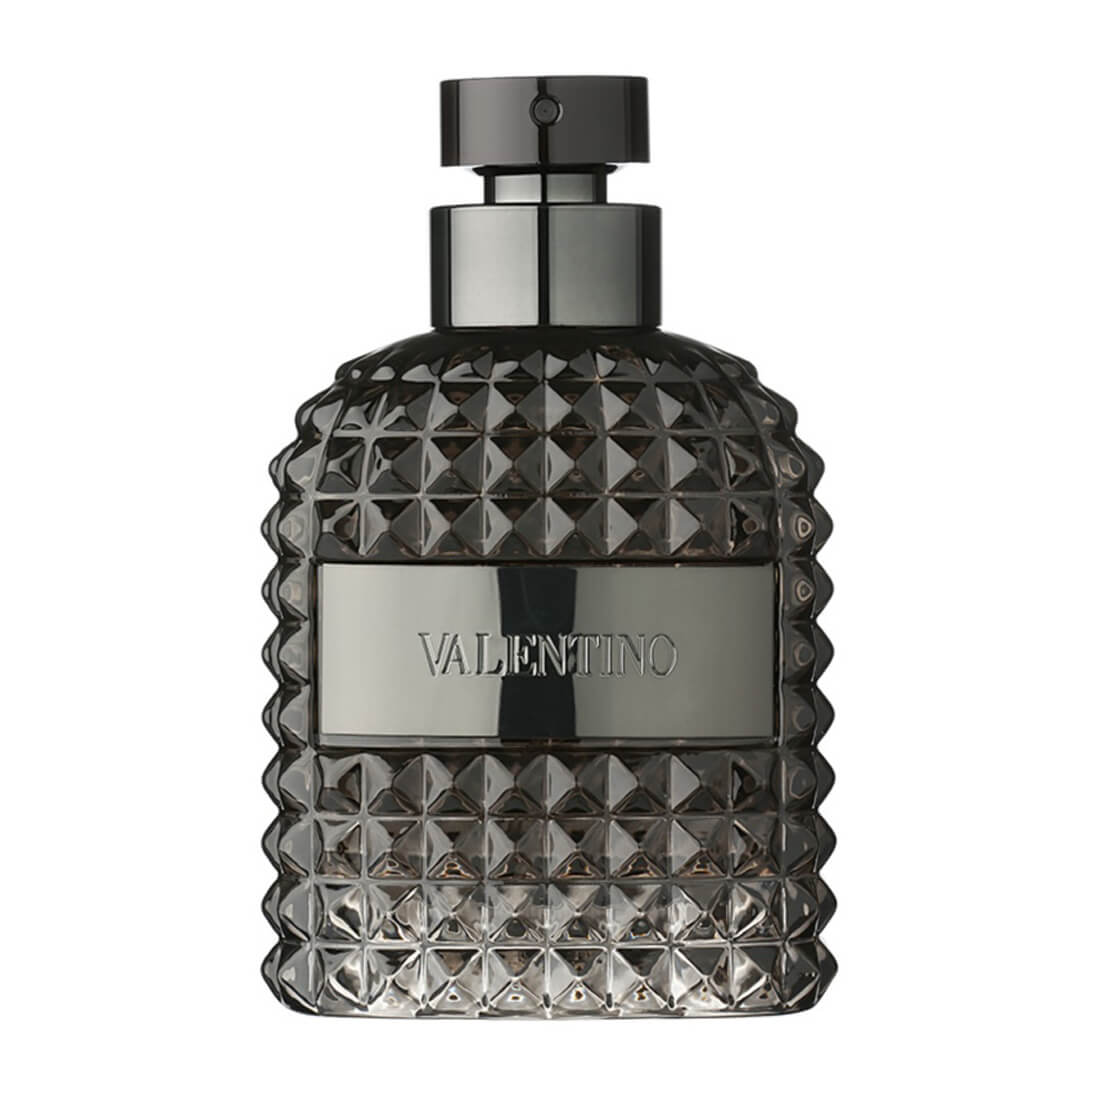 Valentino Uomo Intense Eau De Perfume For Men - 100ml